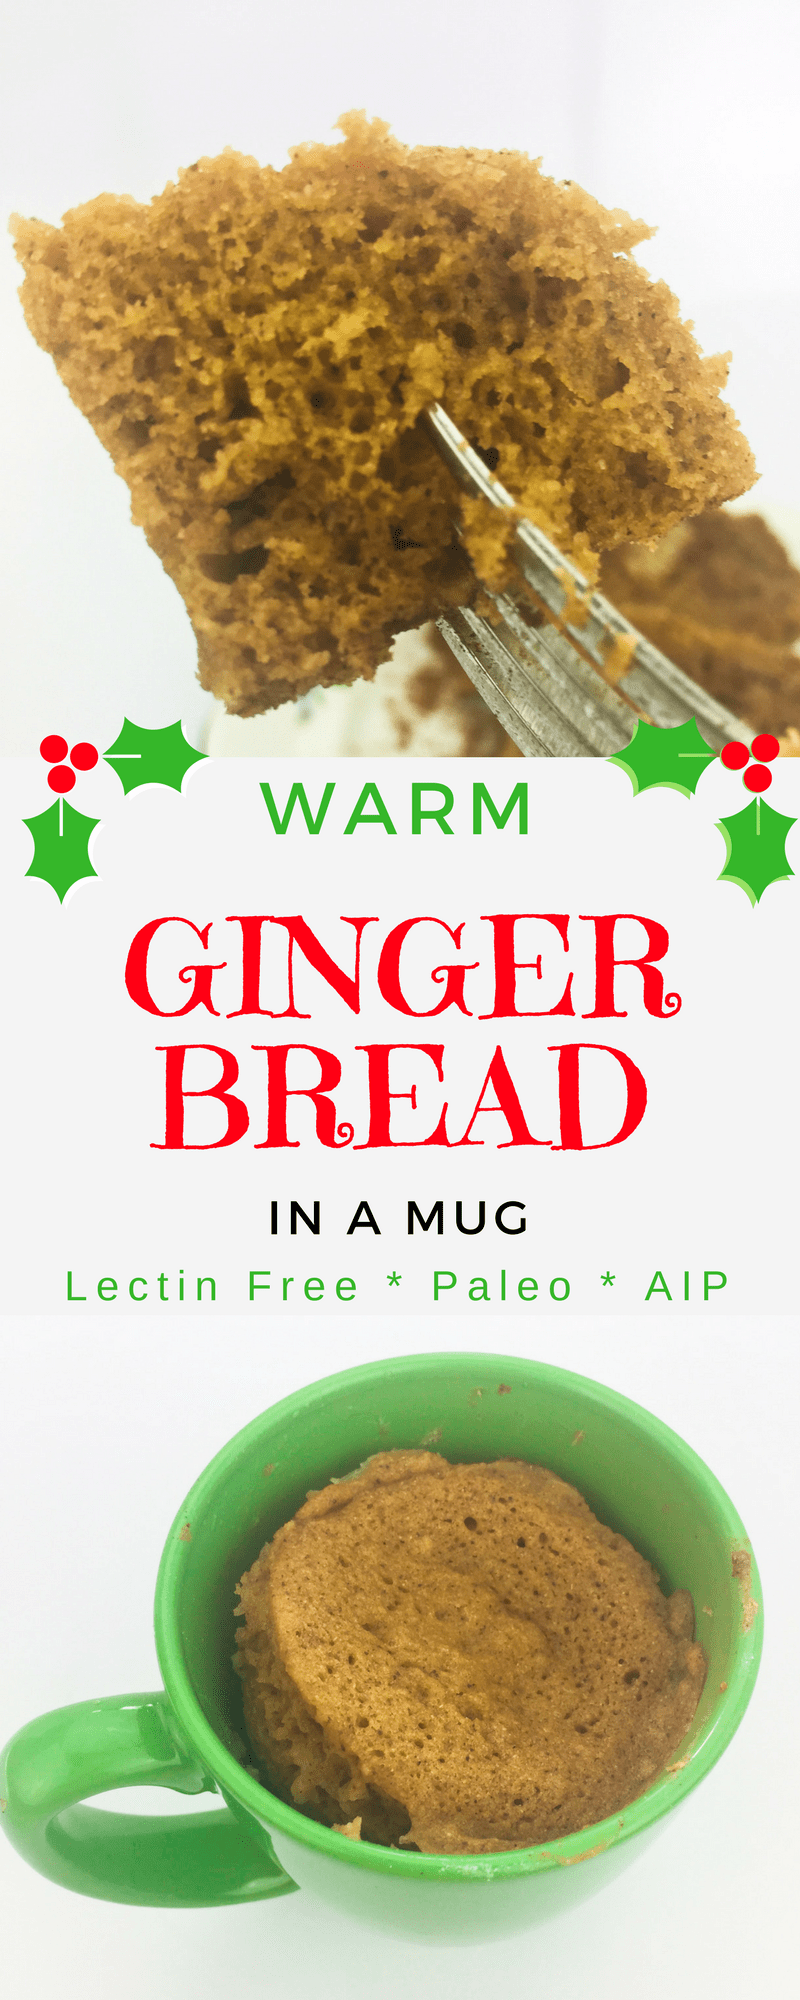 Give your gut some Christmas cheer with this warm, lectin-free gingerbread in a mug recipe: gluten free, grain free, casein free, and sugar free!